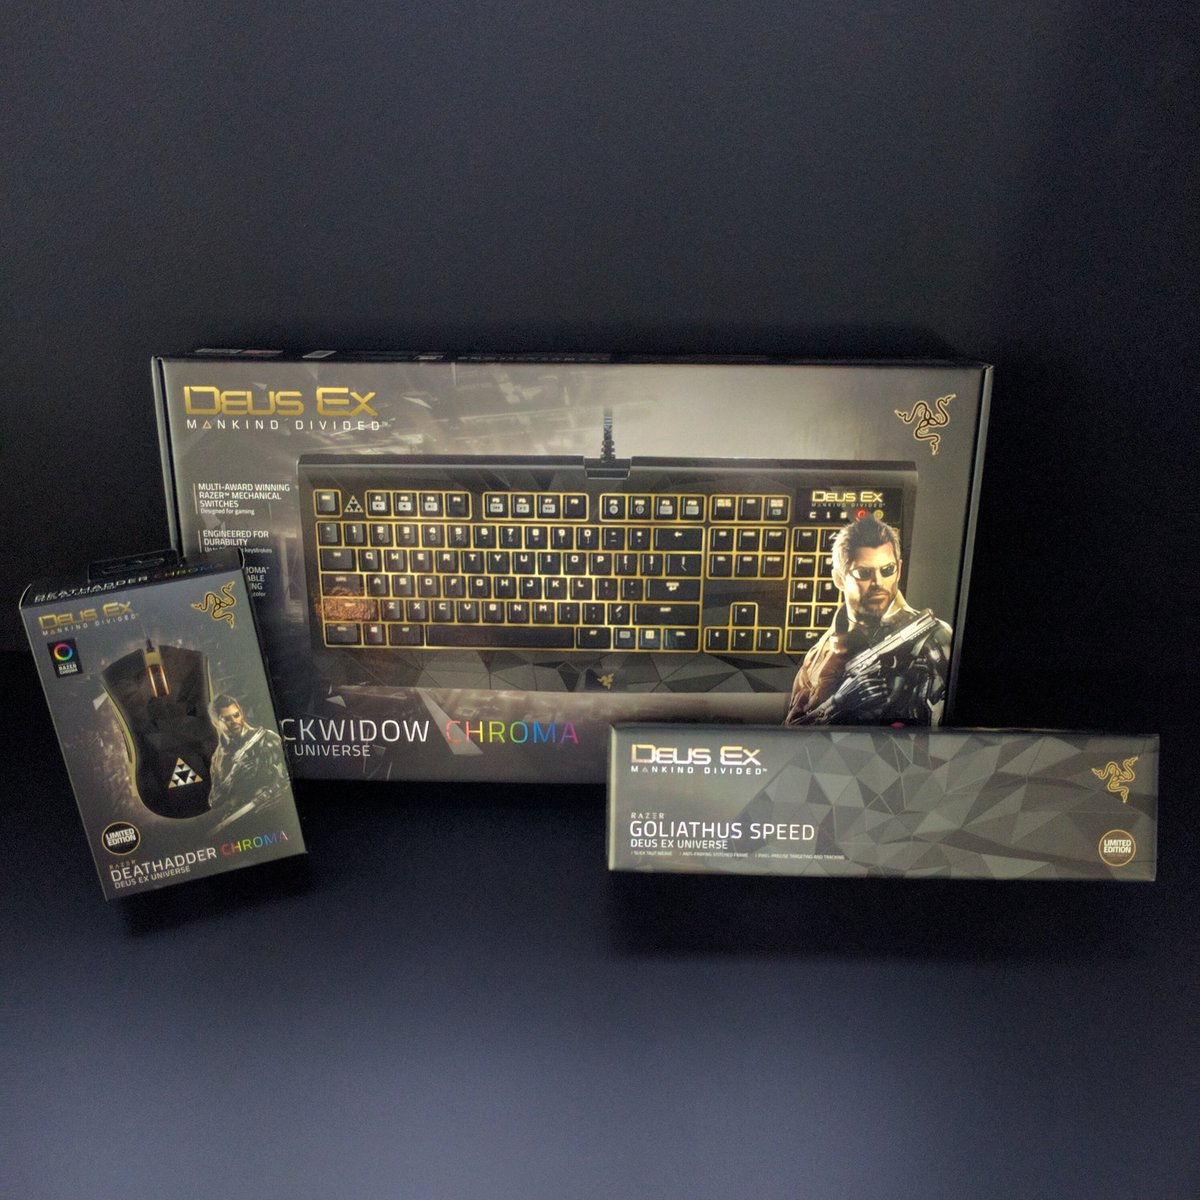 @DeusEx Mankind Divided Limited Edition hardware available now at #RazerStoreSF. Learn more: https://t.co/3Xp4daGjed https://t.co/p5pPVtTMRJ